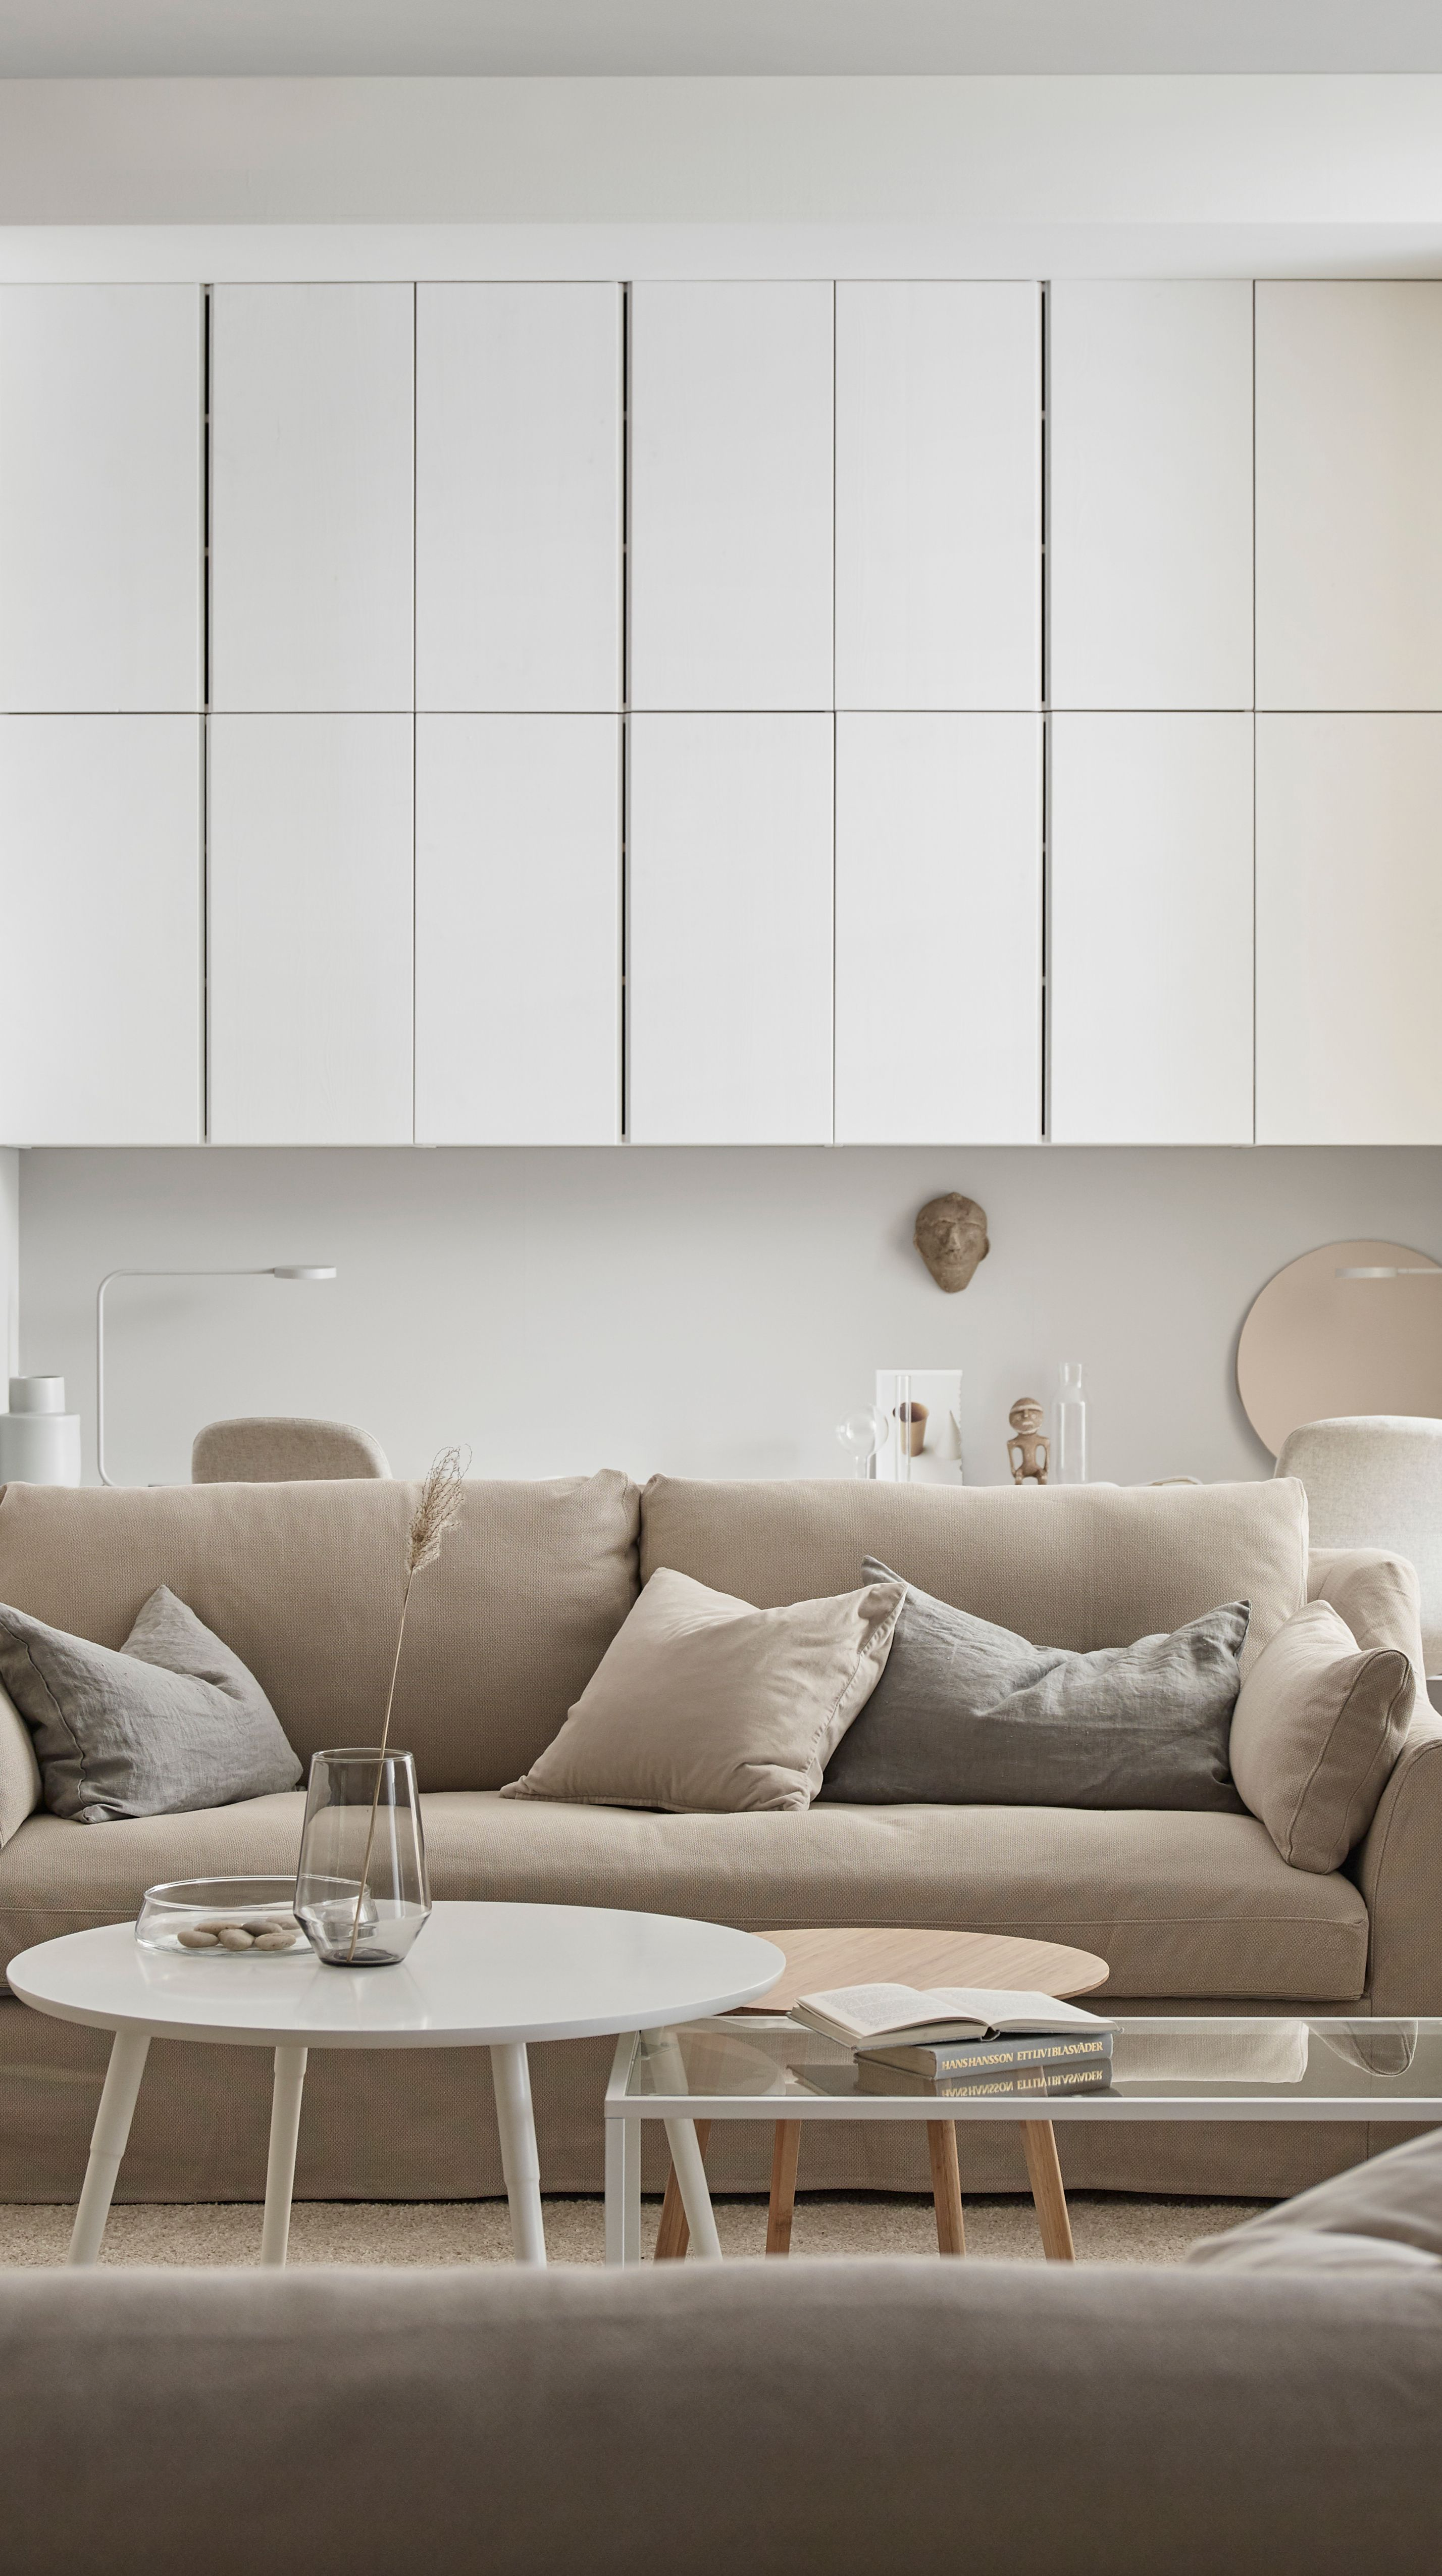 Ikea Switzerland Furnishings For Your Home Beige Sofa Living Room Beige Living Room Decor Beige Couch Decor